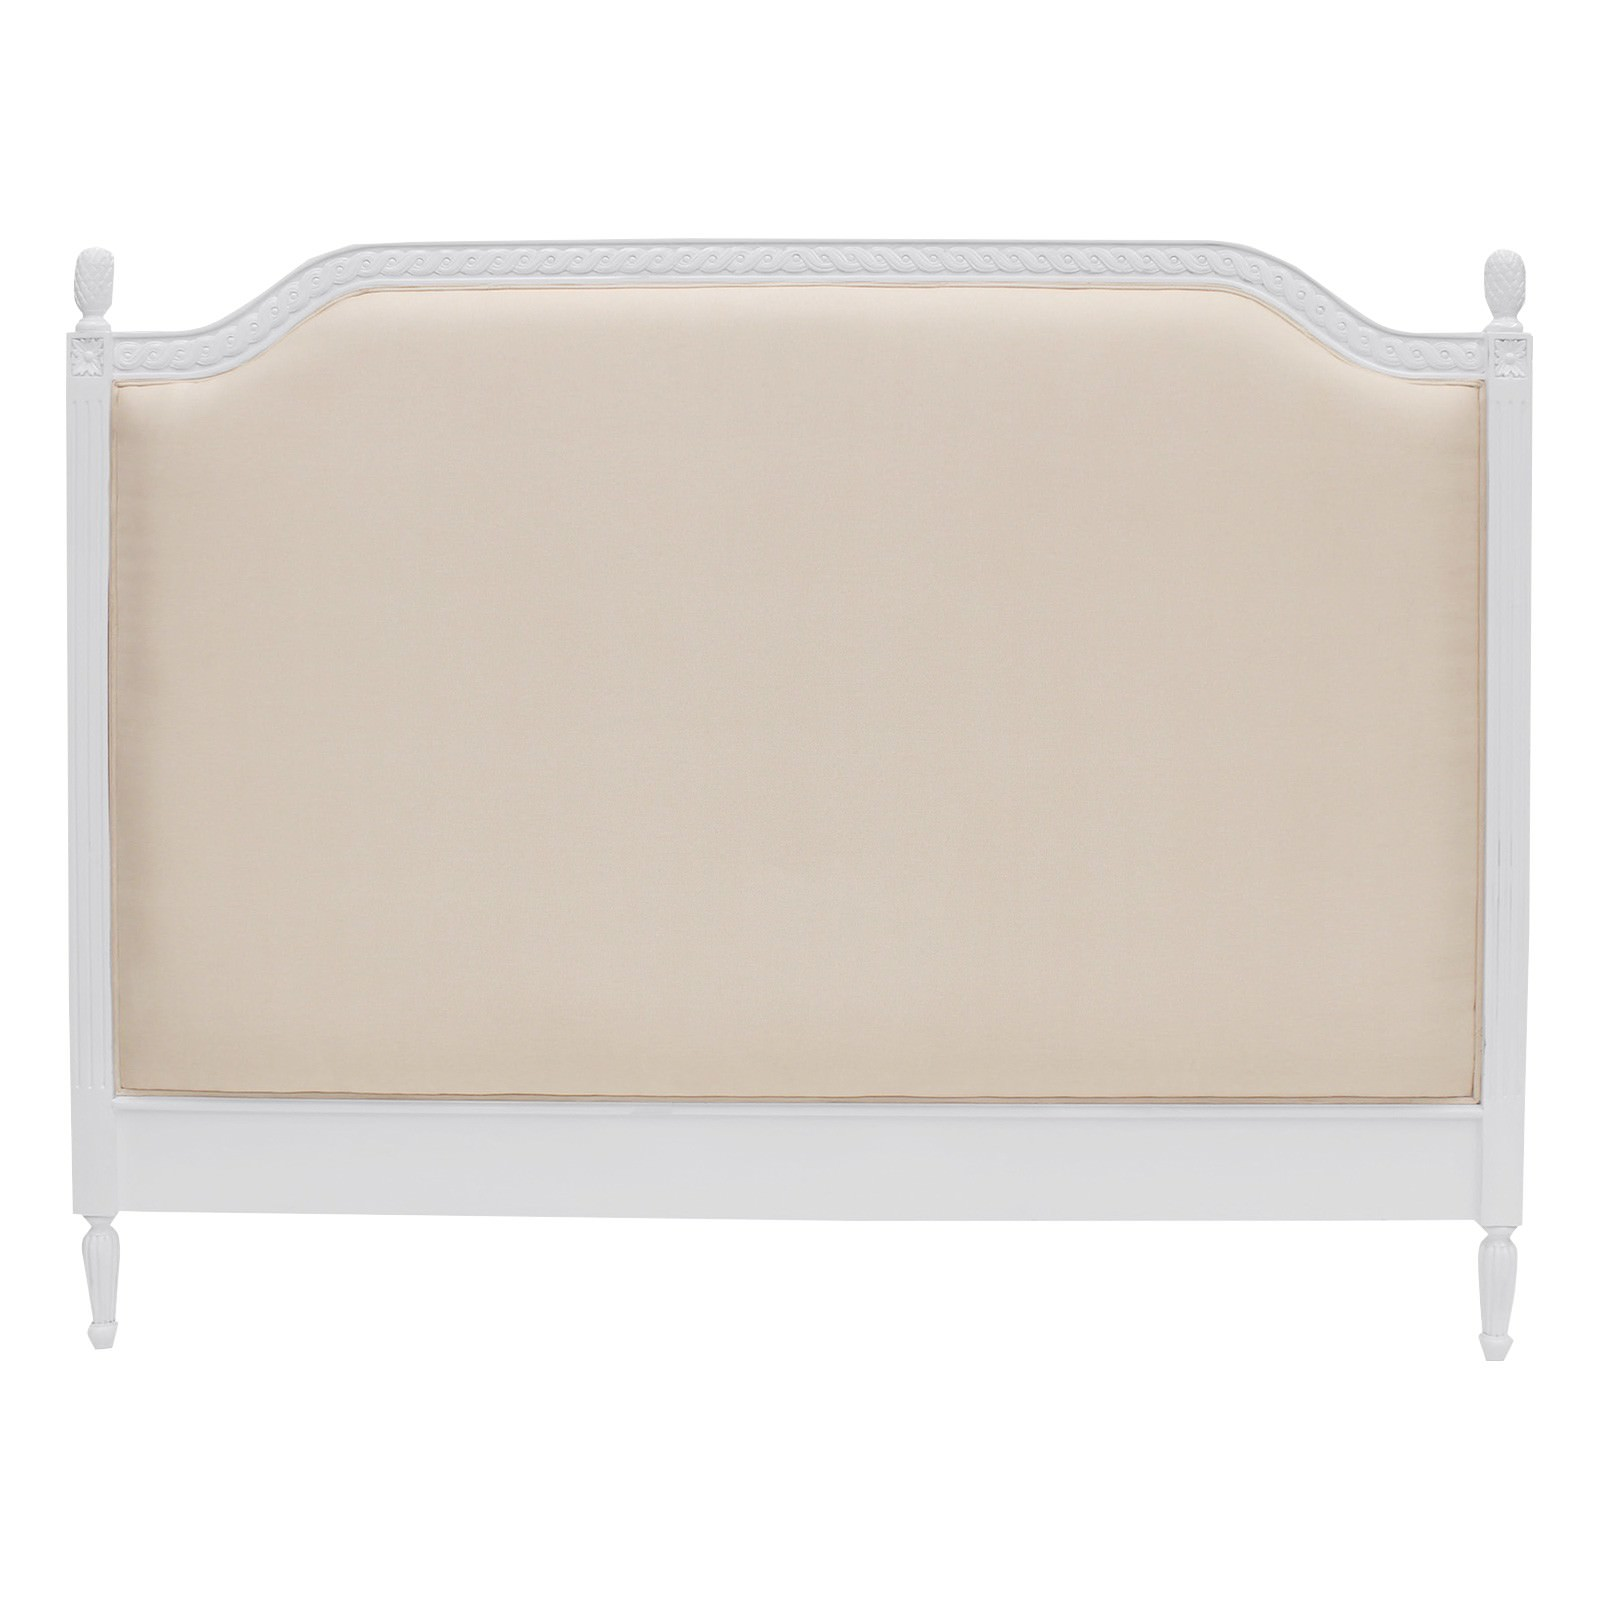 Lapalisse Hand Crafted Upholstered  Mahogany Timber Bed Headboard, Queen, White